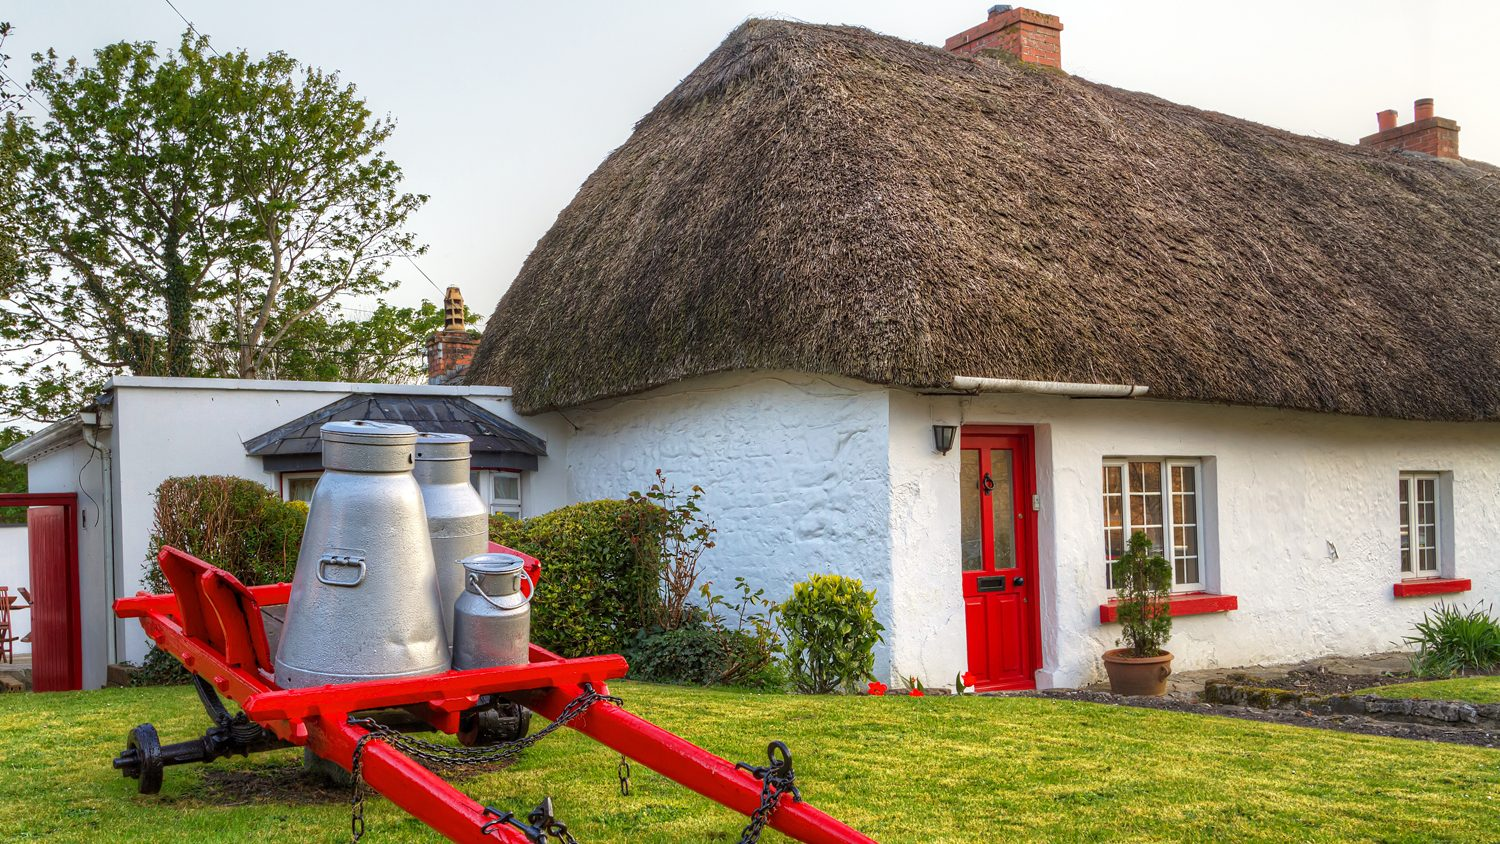 Thached-roof farm cottage in Ireland with milk cart in front lawn.